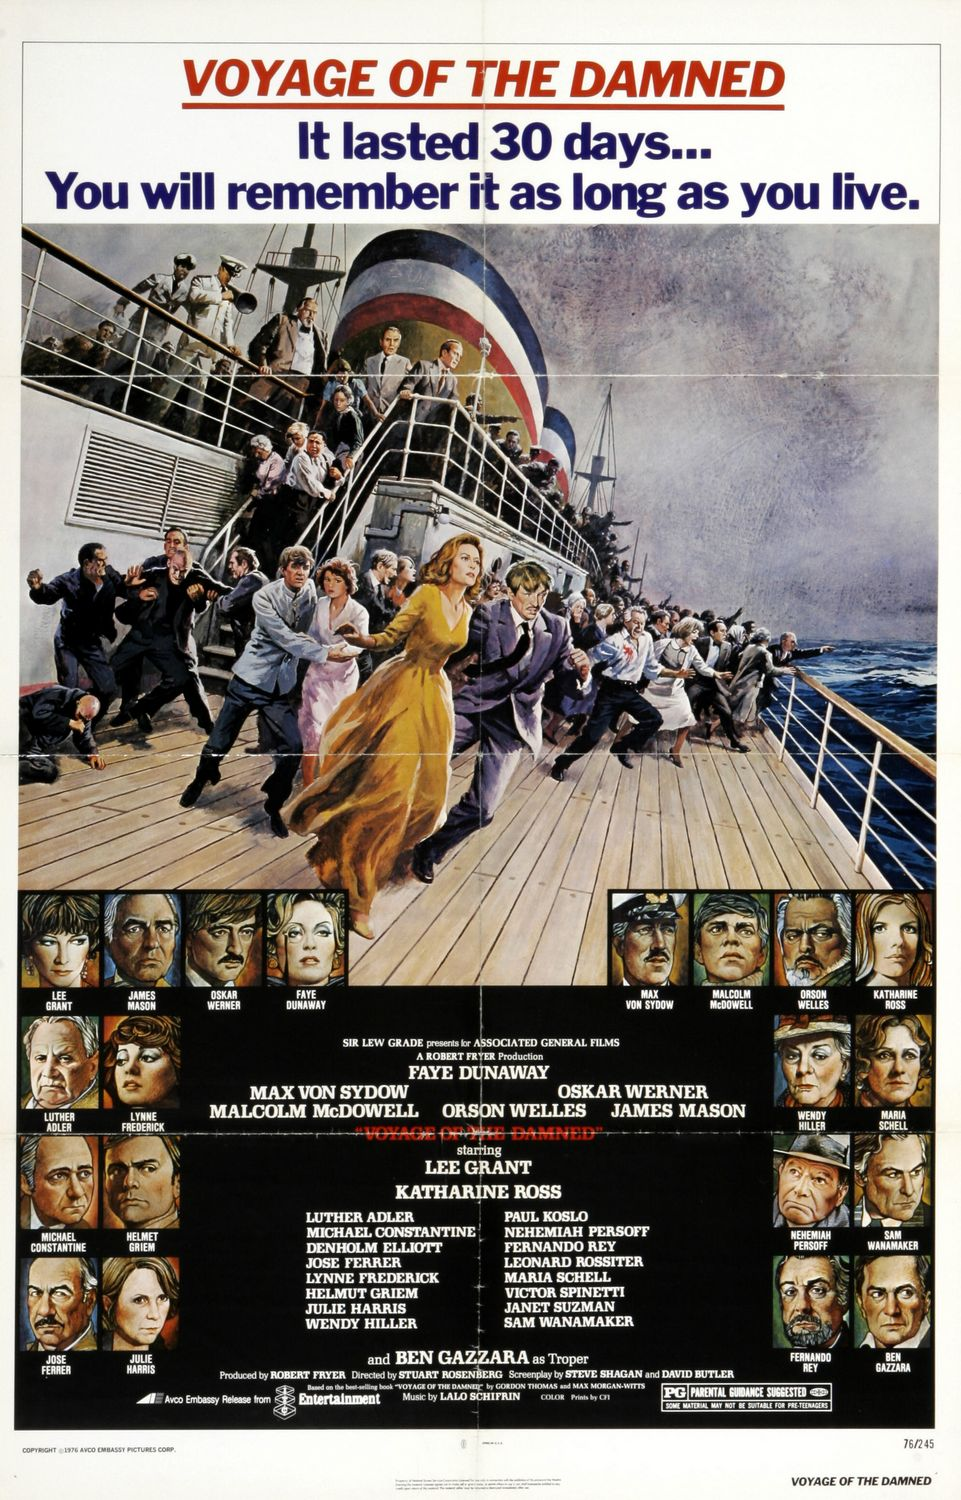 Voyage of the Damned (1976) - cult film poster drama ship boad Titanic